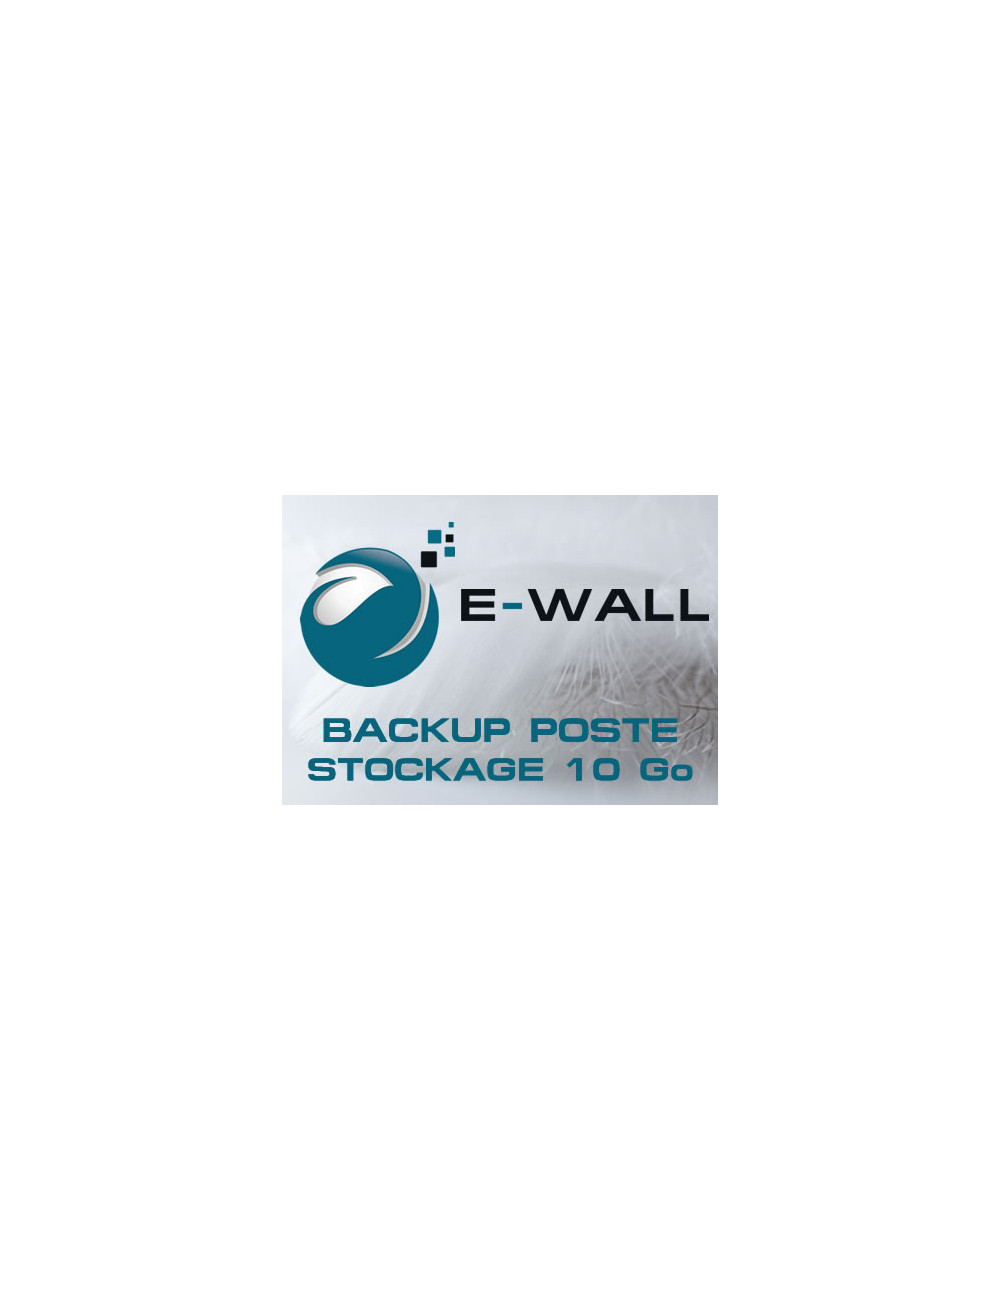 Sauvegarde 1 poste Windows / Linux / MAC - Stockage 10 Go - 1 an